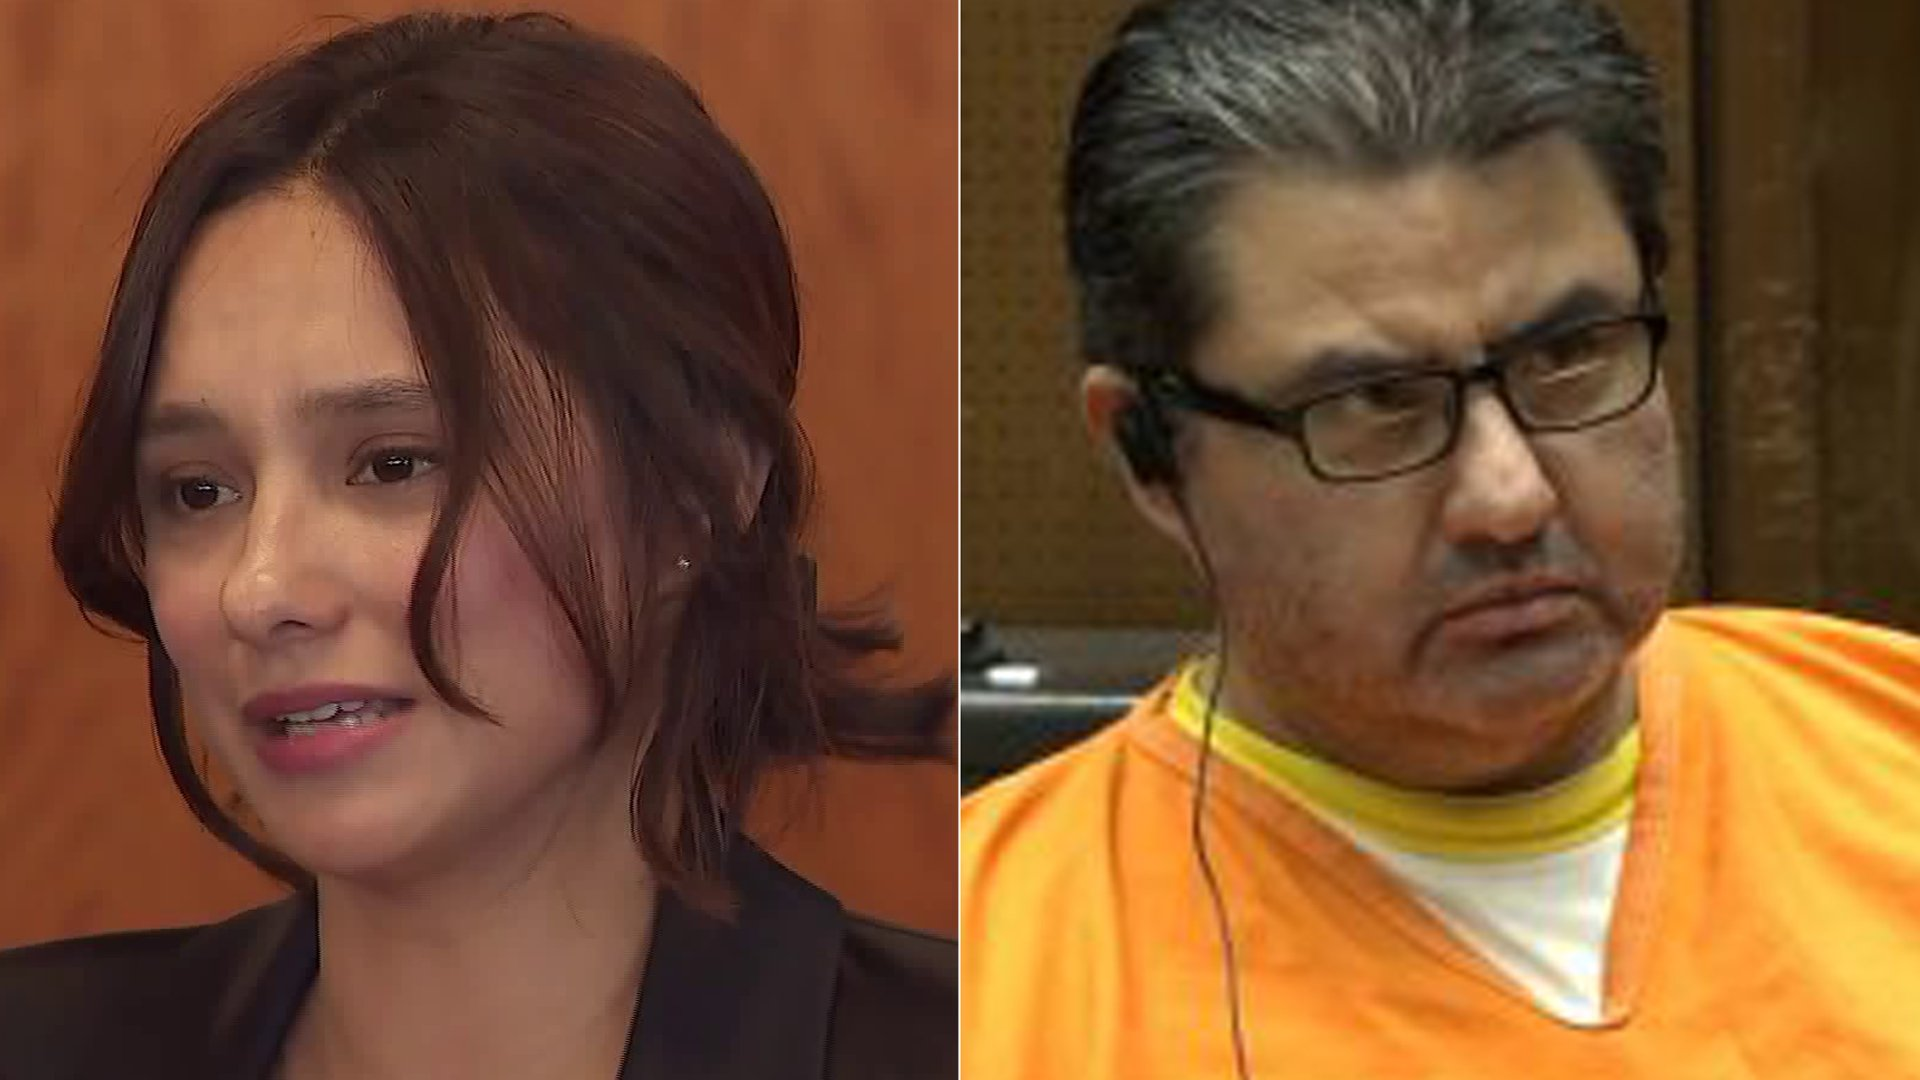 From left to right: Sochil Martin details allegations against the La Luz Del Mundo Church at a news conference in Los Angeles, Feb. 13, 2020. Naasón Joaquín García appears for a bail hearing in a downtown L.A. courtroom on July 16, 2019. (Credit: KTLA)